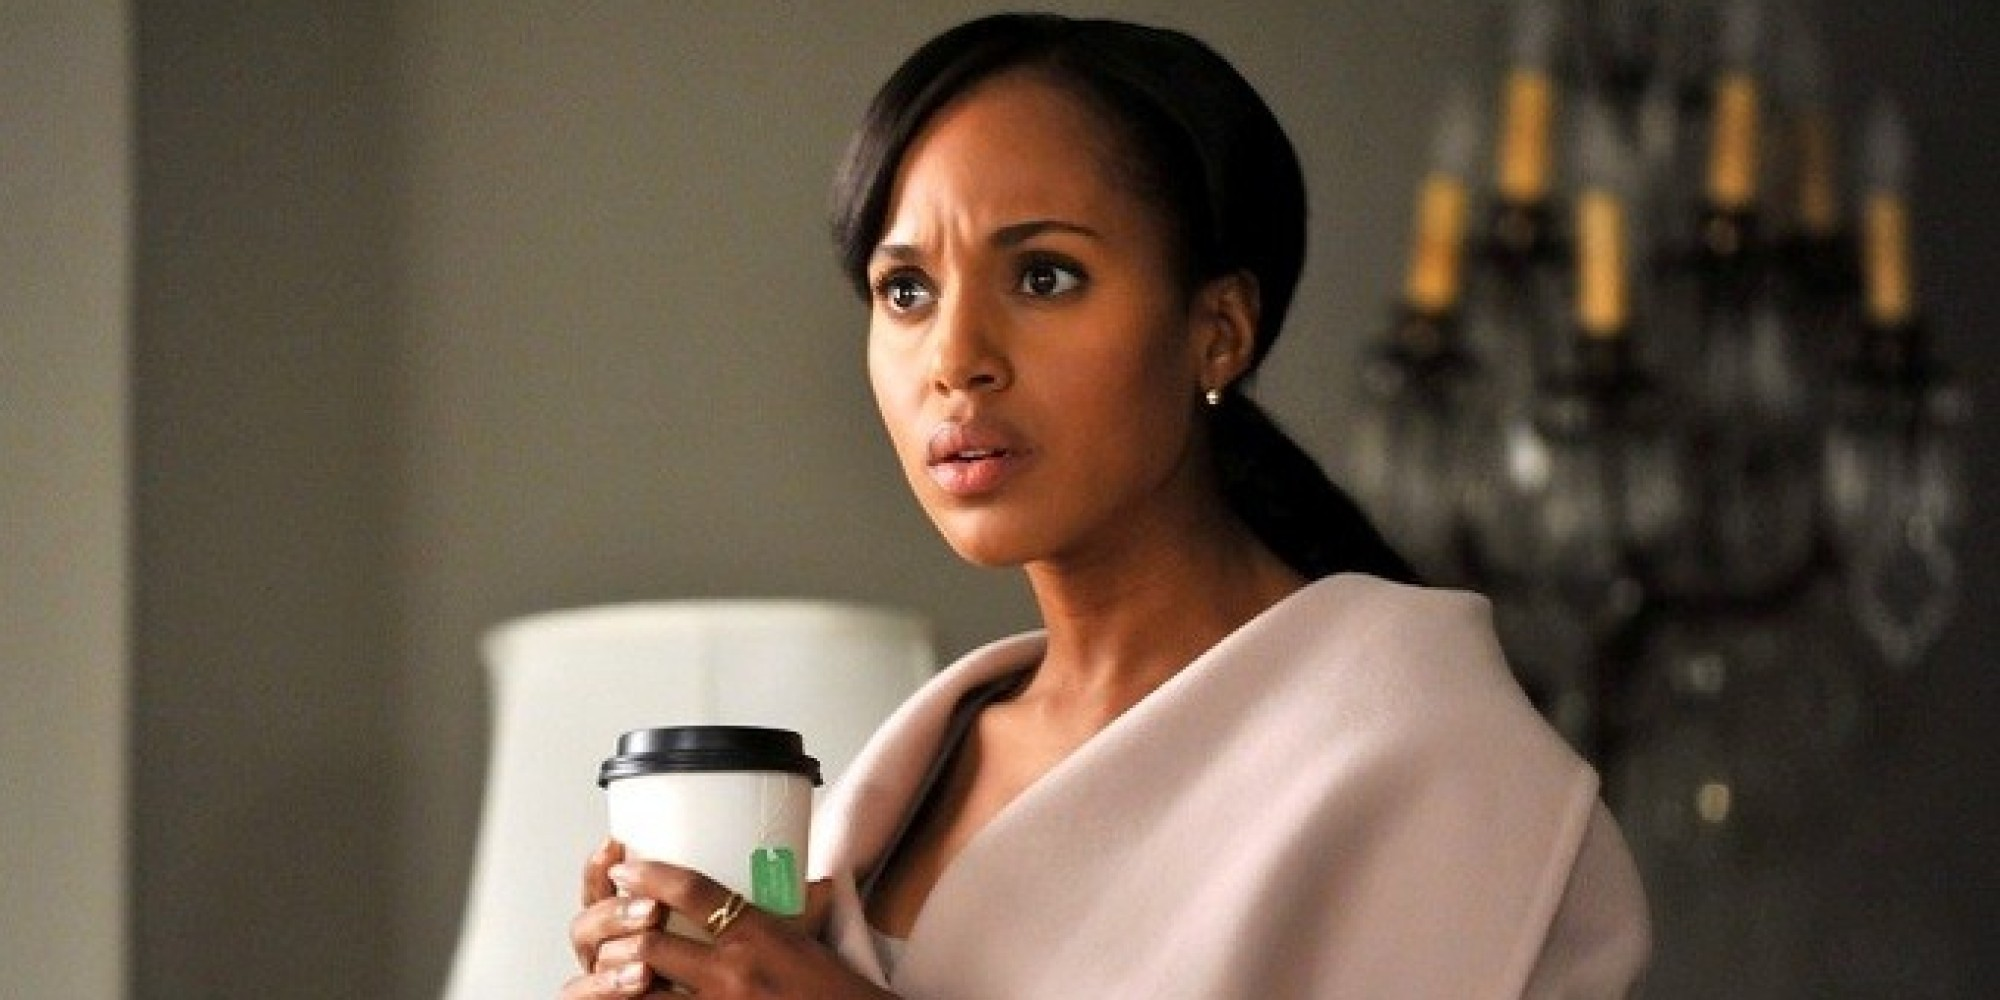 olivia-pope_scandal_10_powerful_women_from_movies_and_tv_series_fabulous-muses2